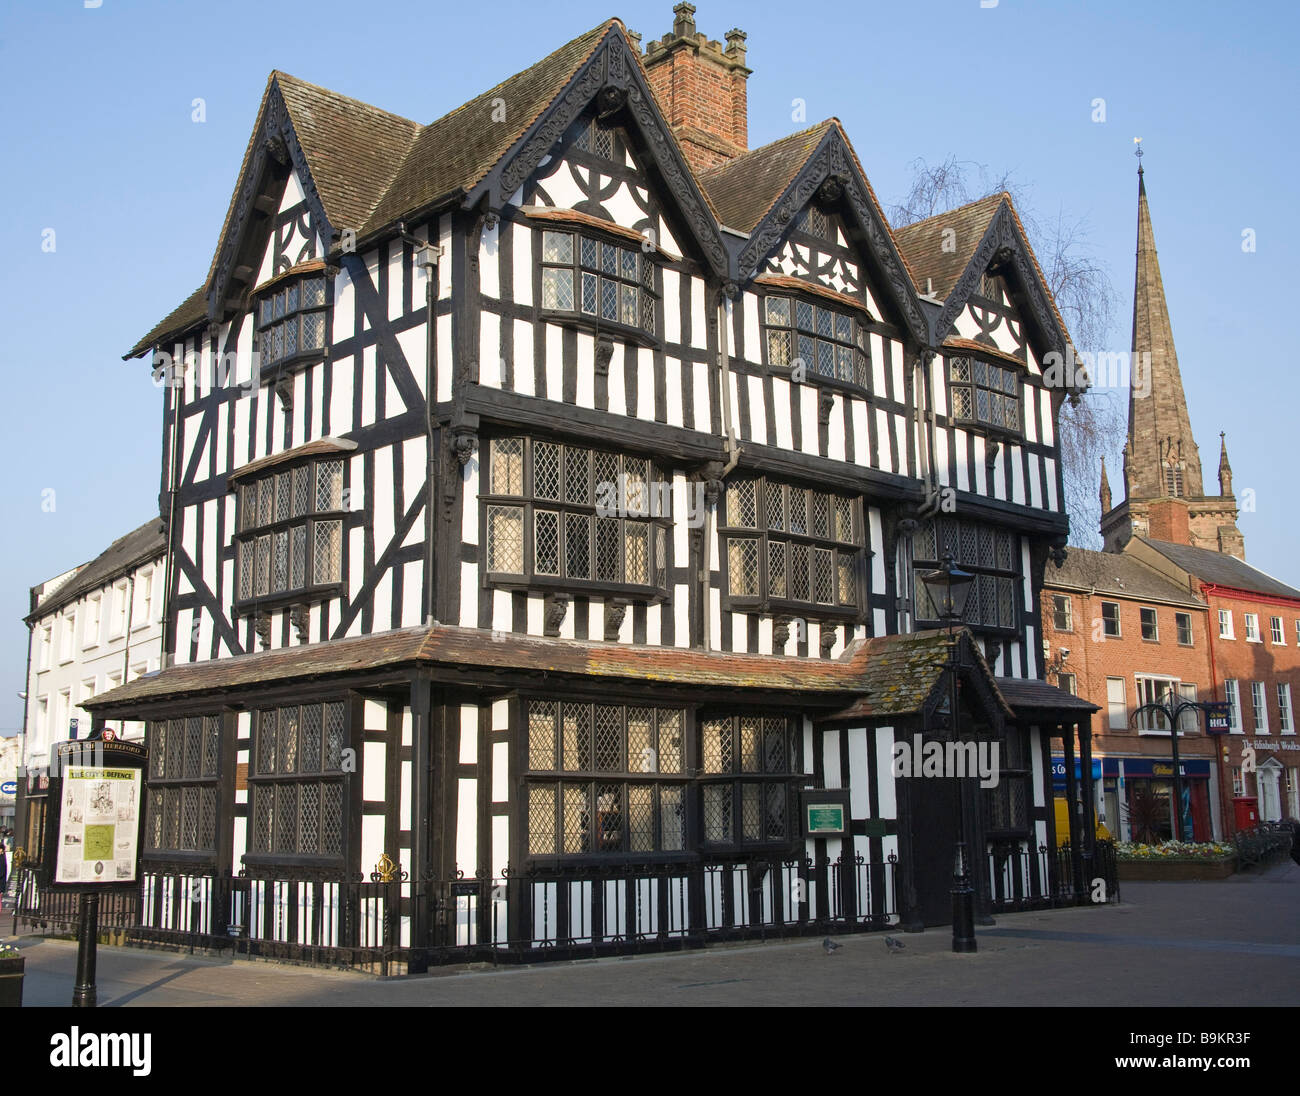 Old House Uk Best Interior Today Wiring Colours Hereford England March The Museum Built 1621 A Fine Rh Alamy Com Buy